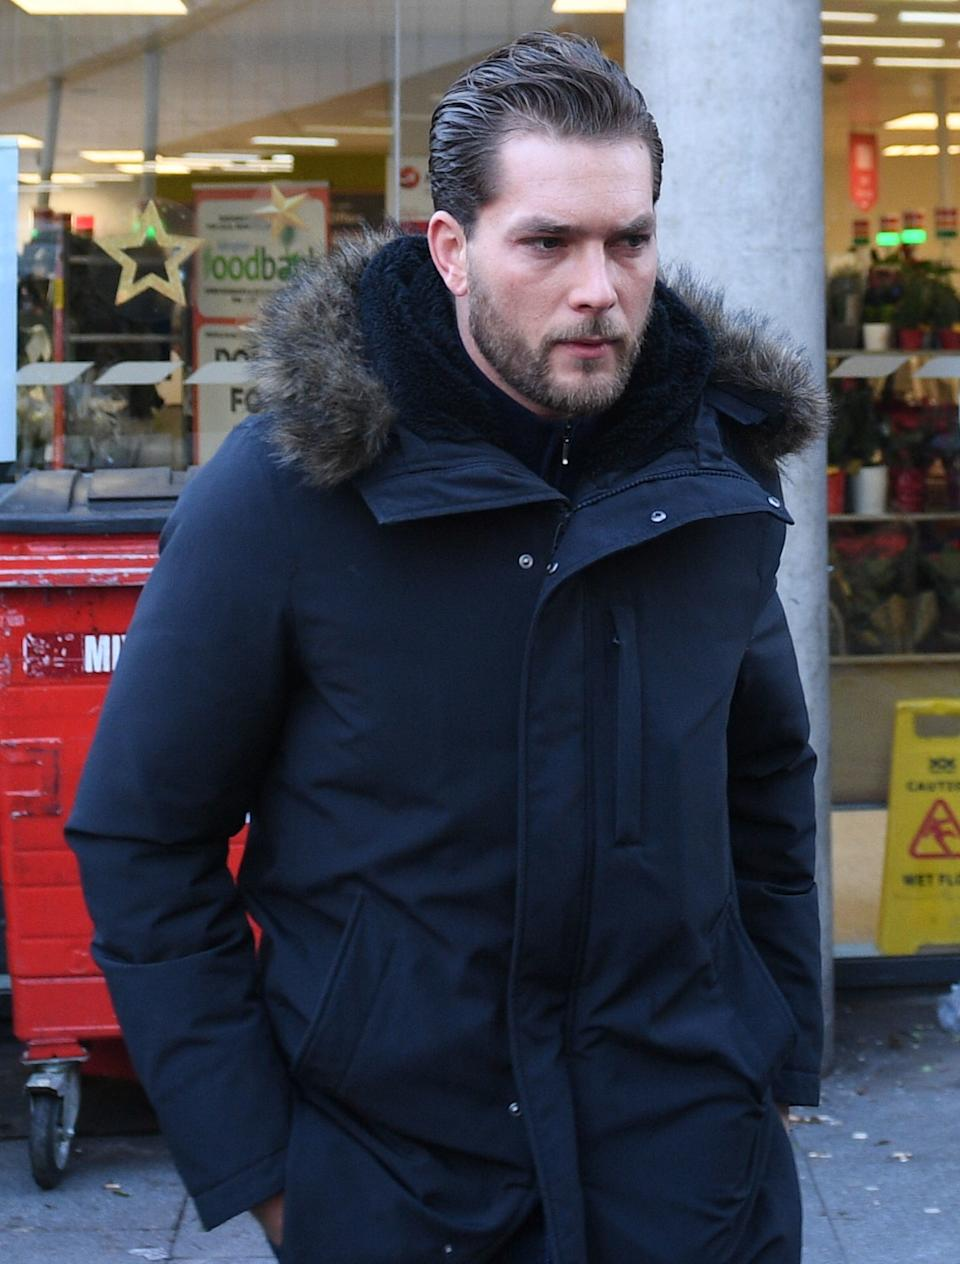 File photo dated 23/12/2019 of Lewis Burton, the former boyfriend of he TV presenter Caroline Flack who has died, her family said in a statement.